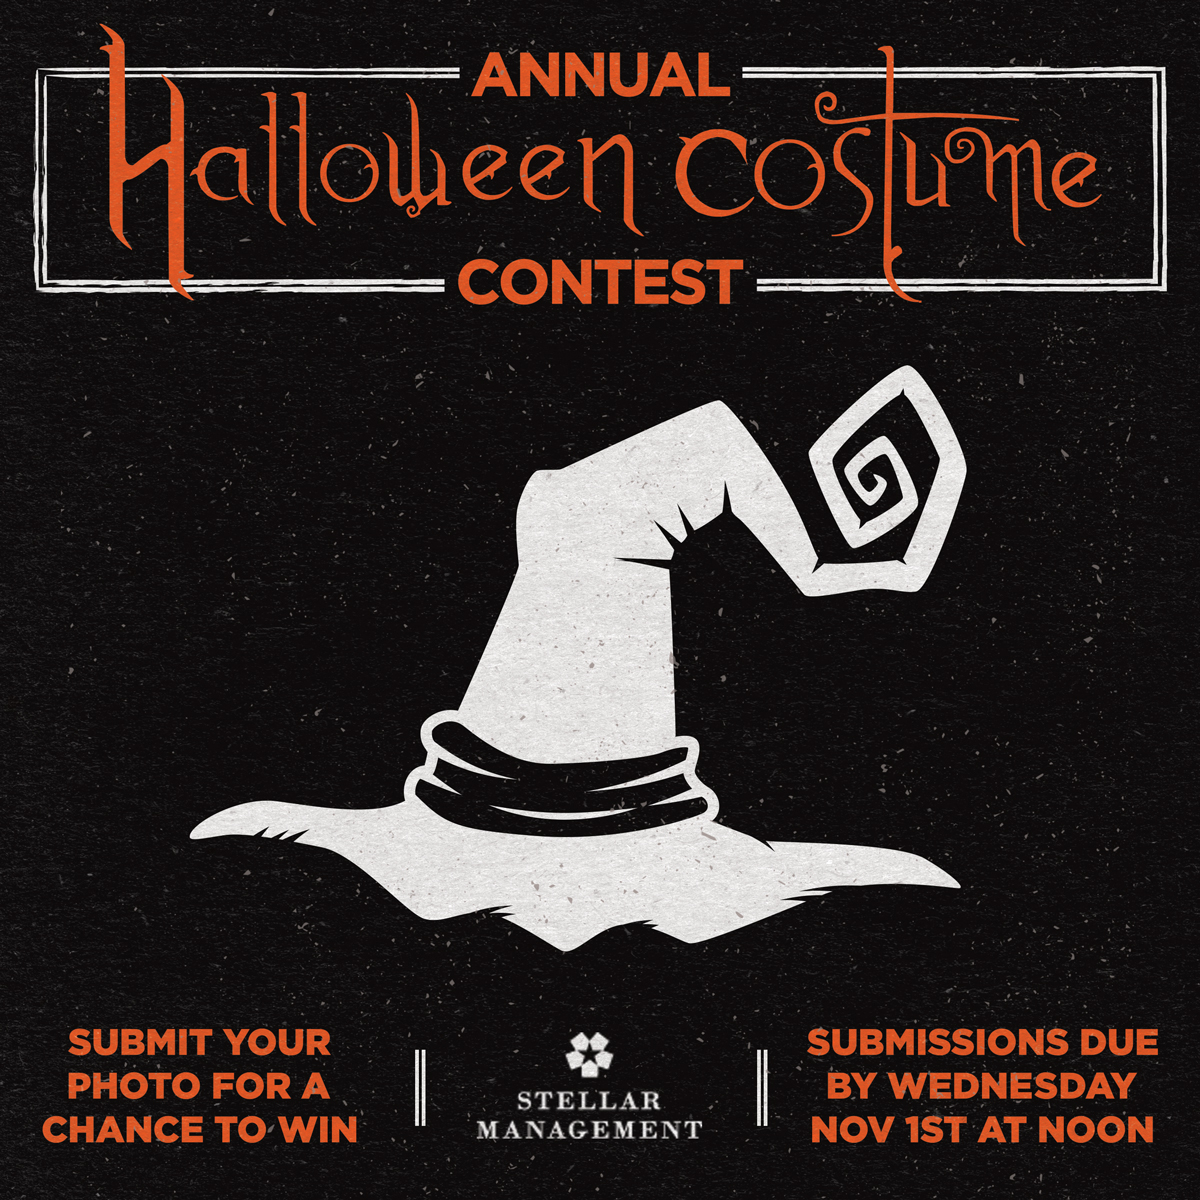 Stellar Management Halloween Contest 2018 image